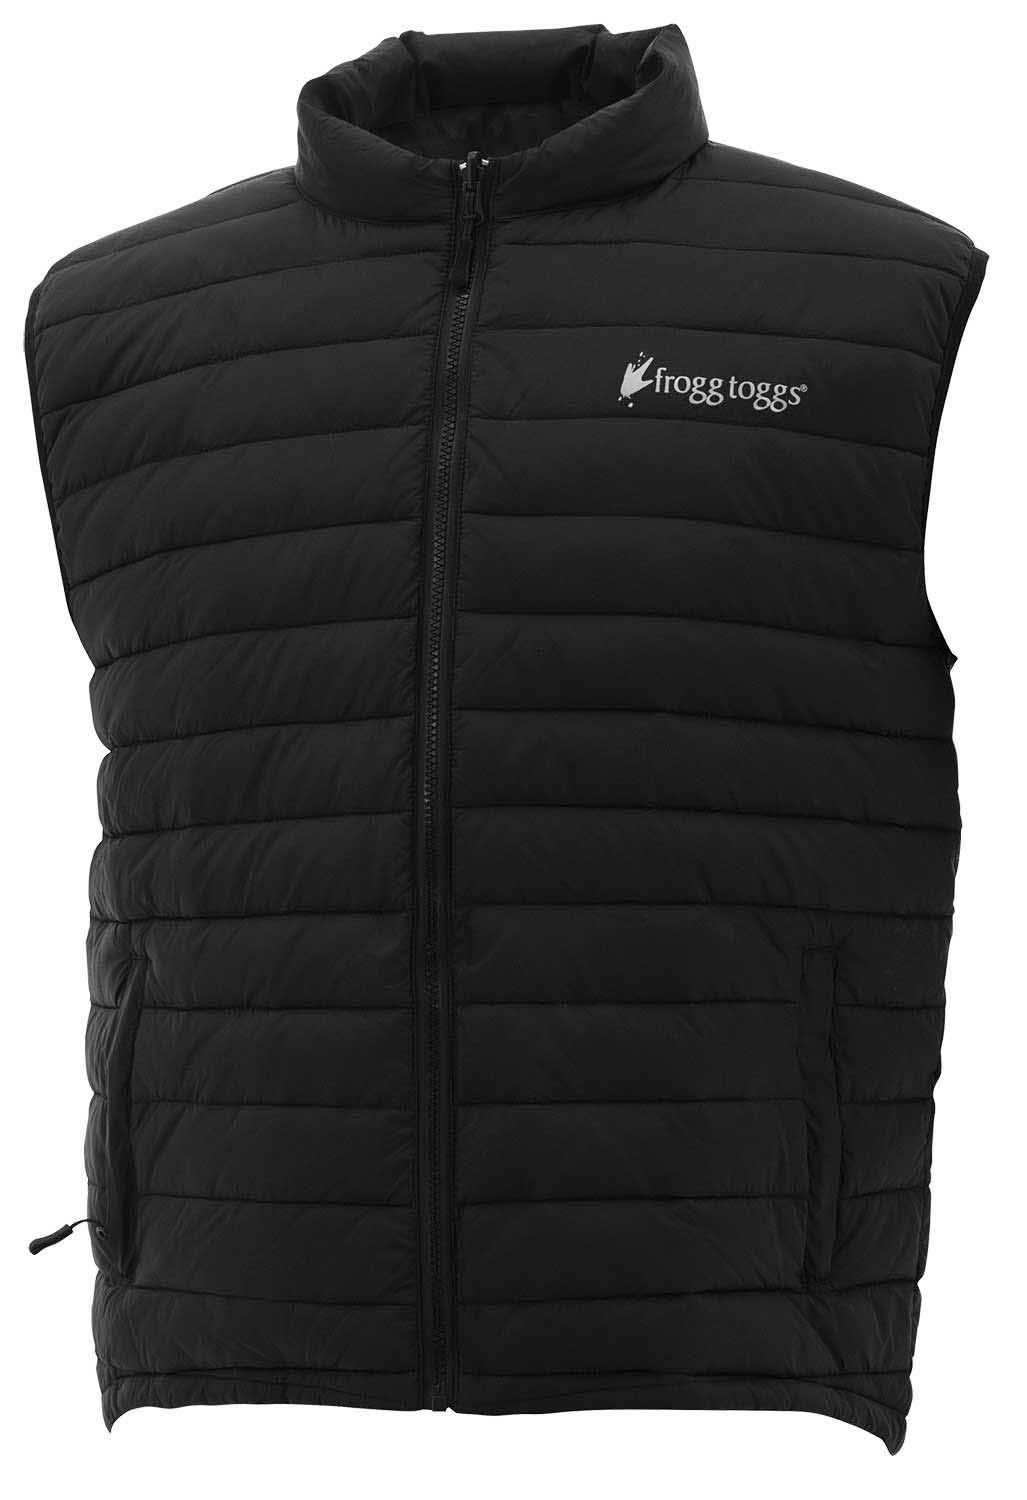 Frogg Toggs Co-Pilot Insulated Puff Vest, Black_1.jpg